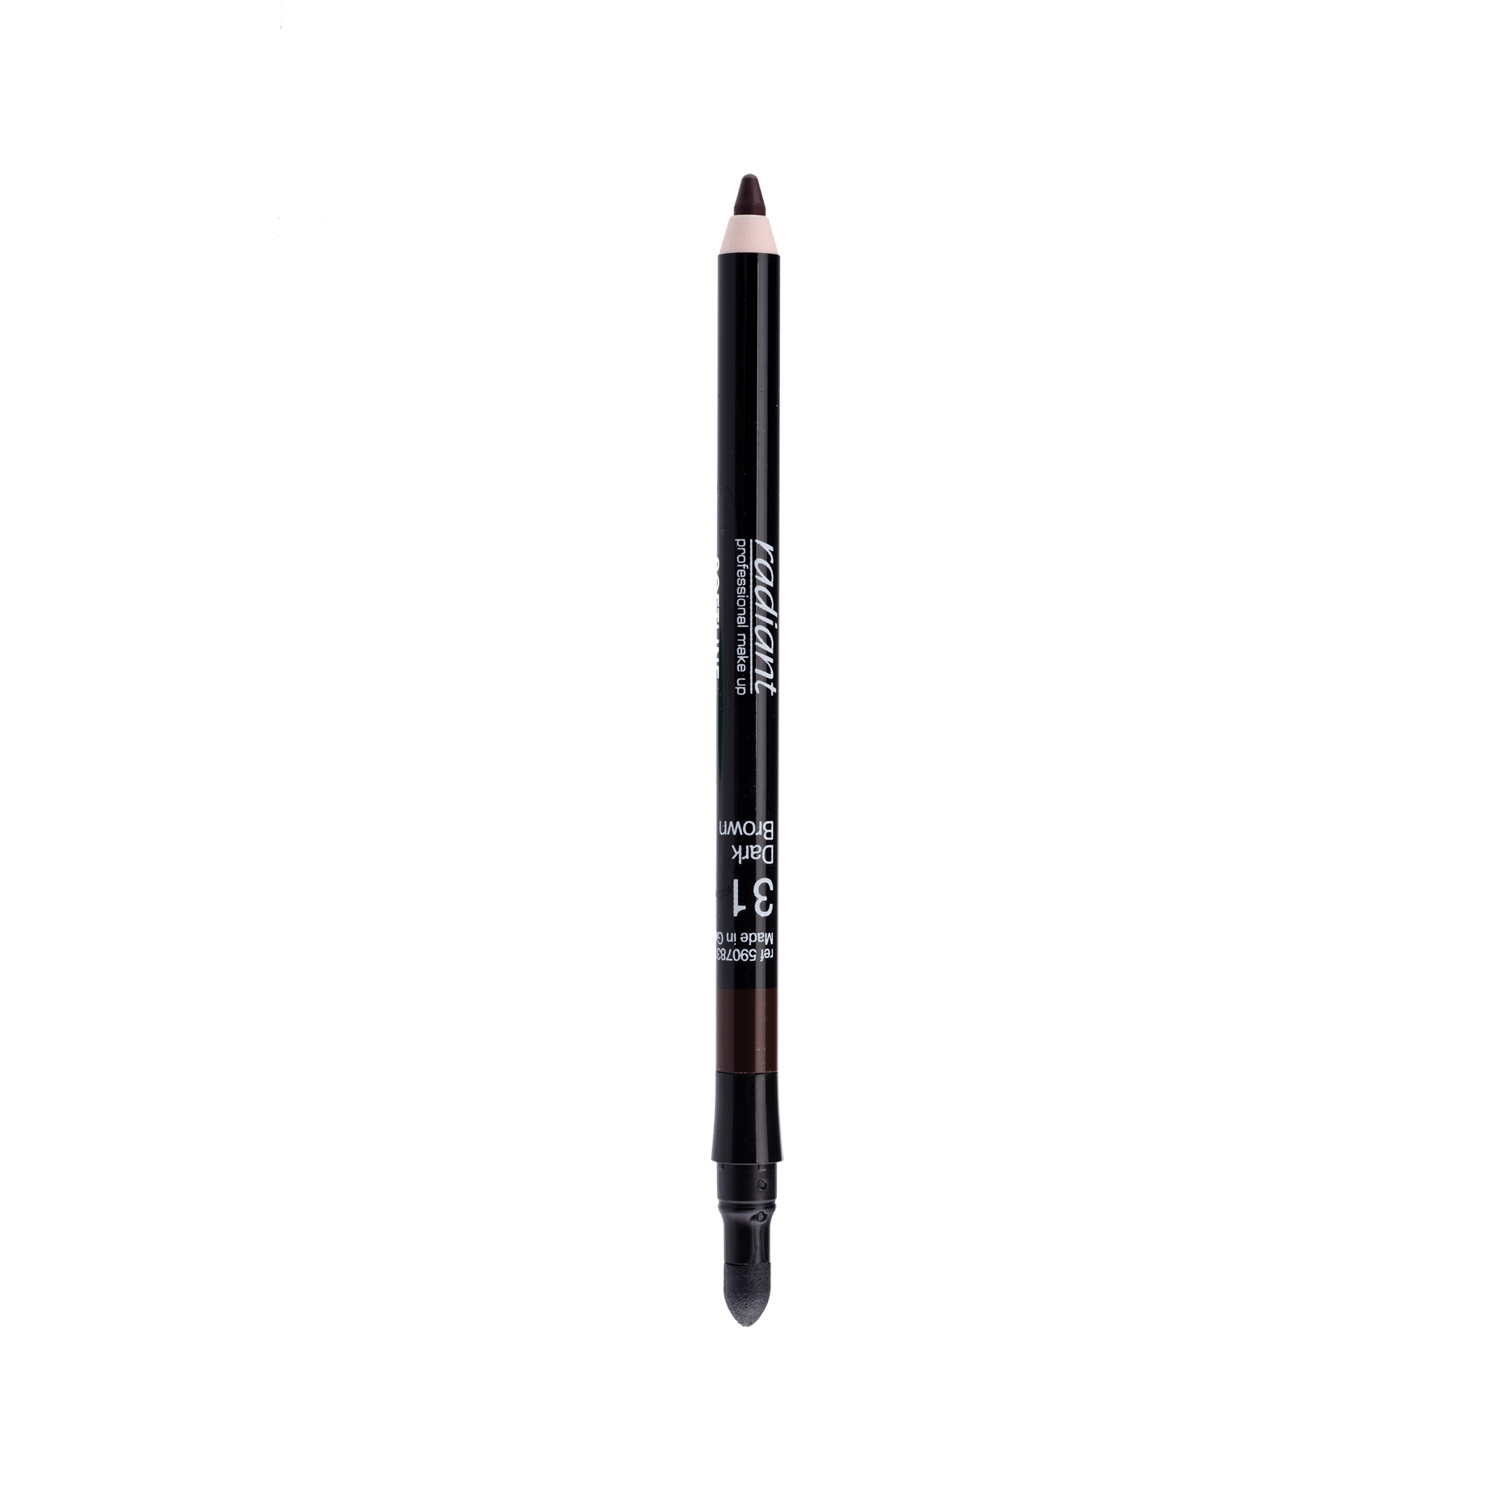 SOFTLINE WATERPROOF EYE PENCIL (31 Smoky Dark Brown)